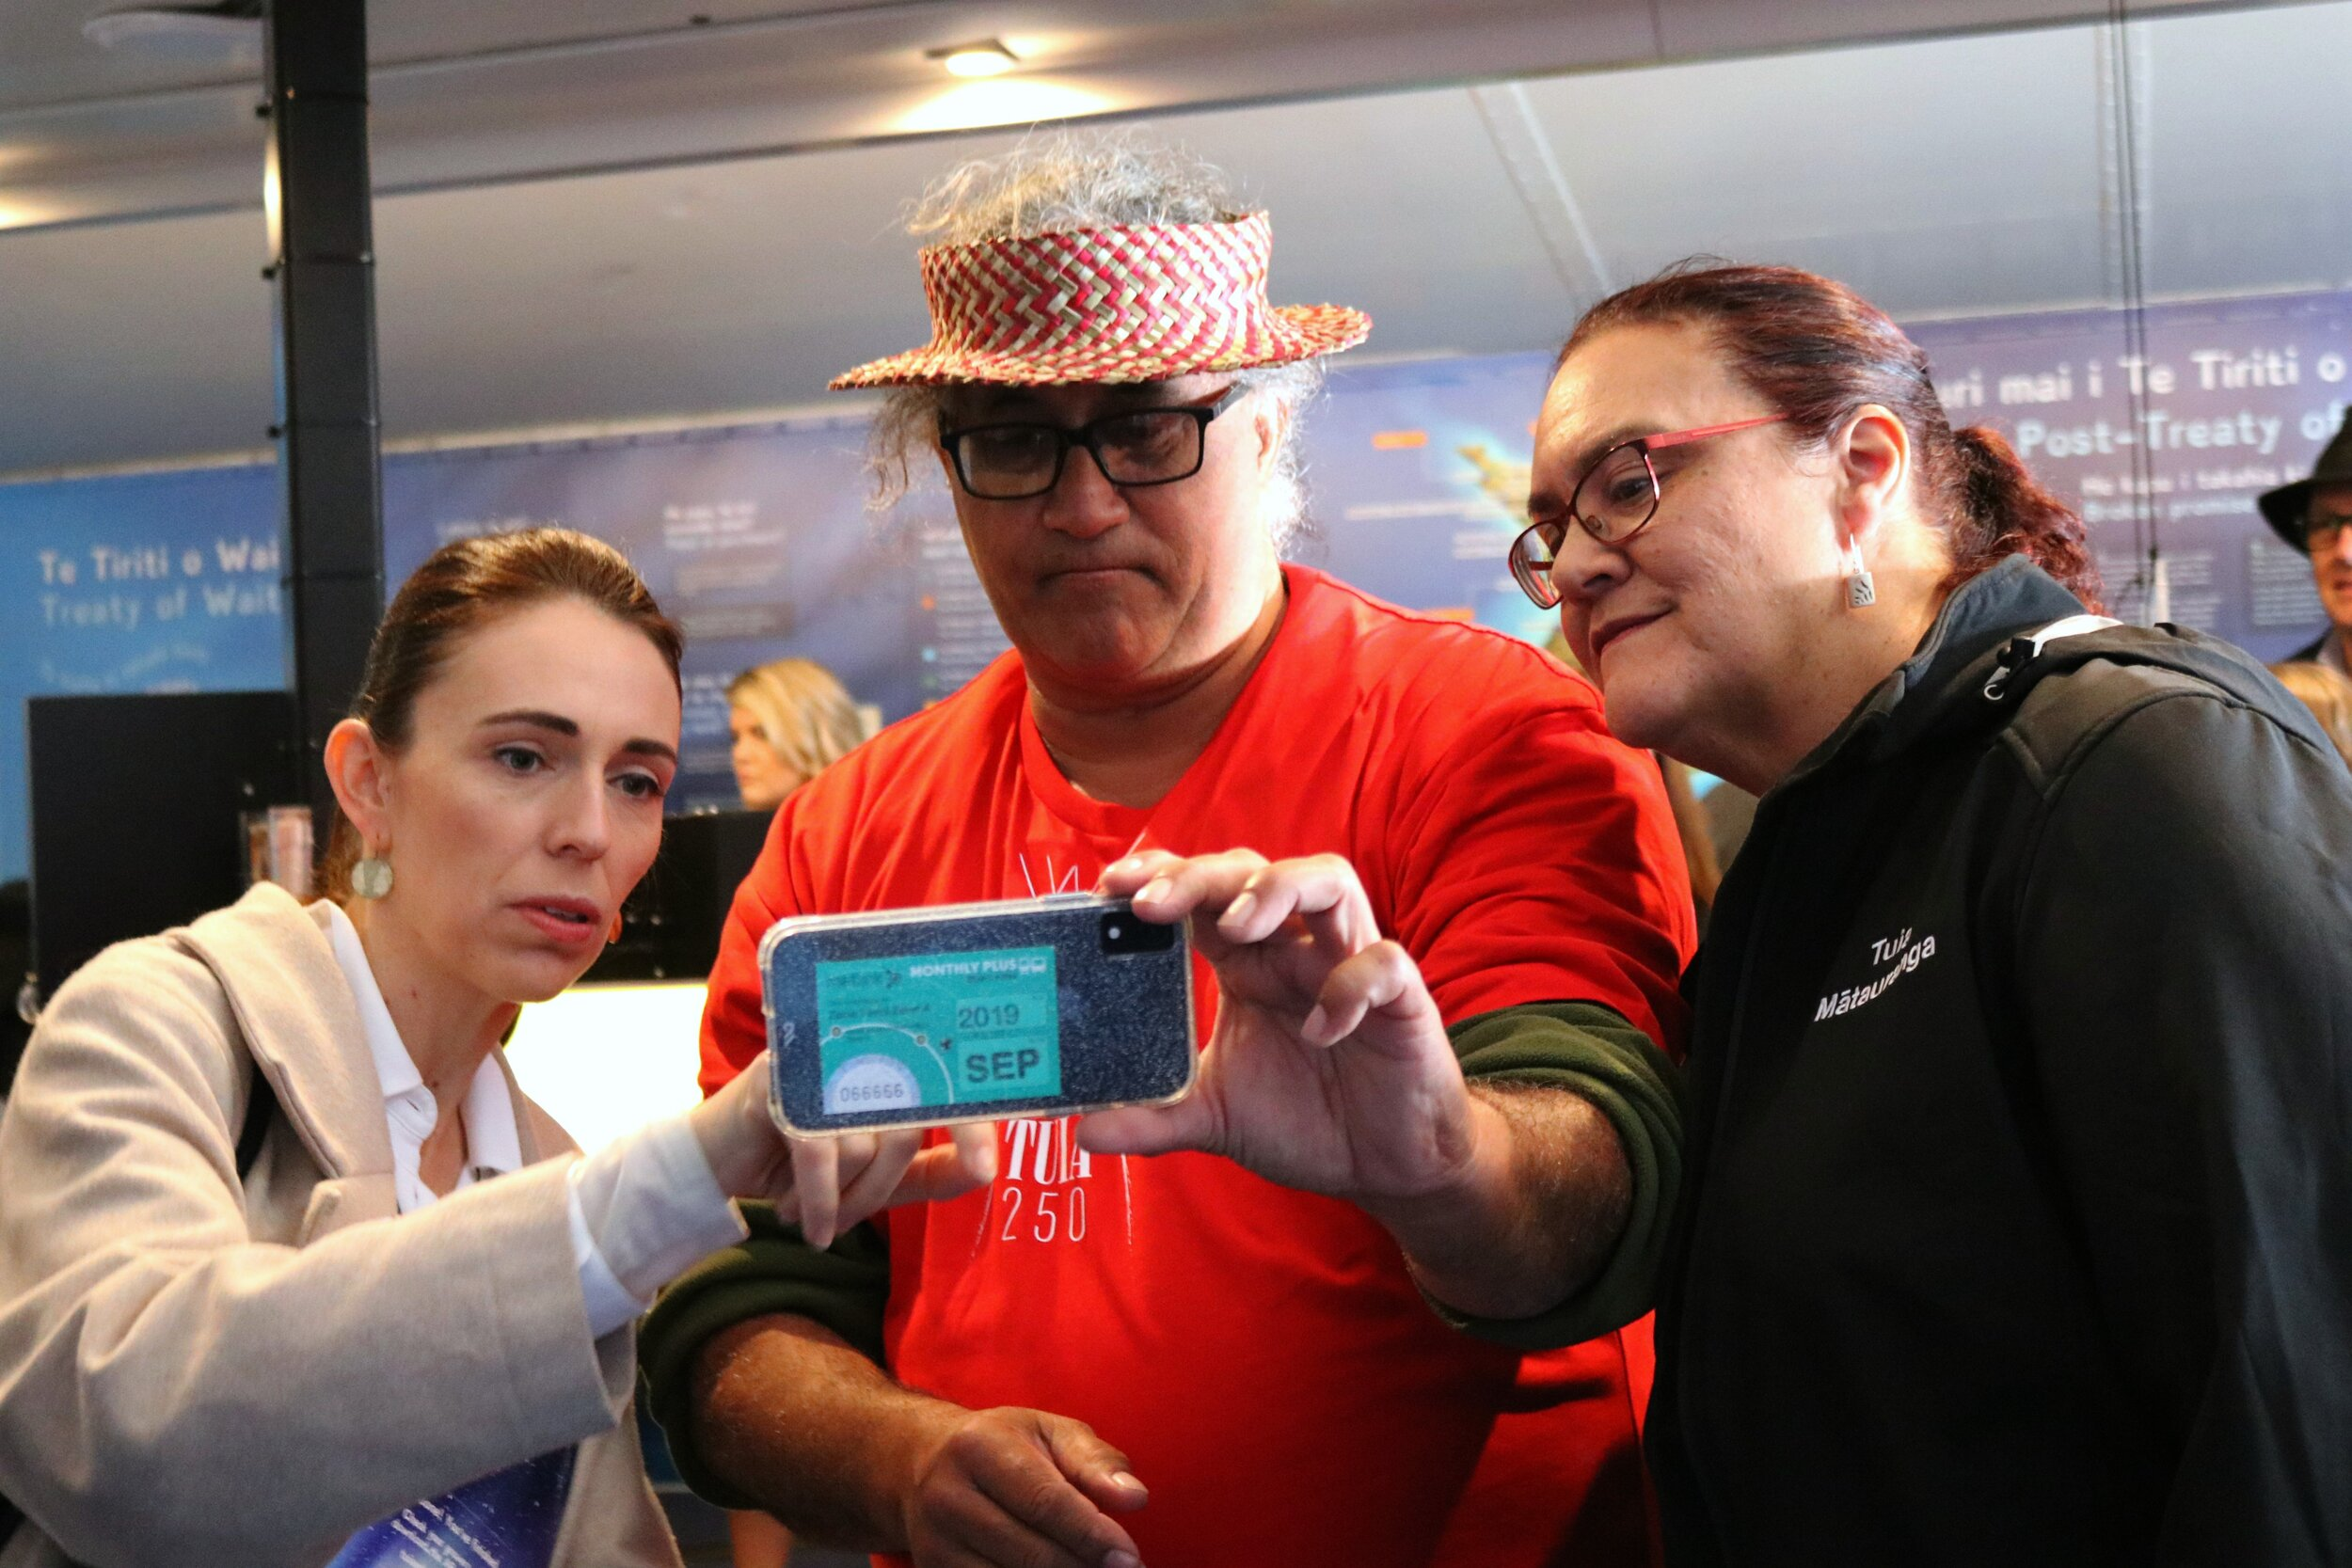 Tuia Mātauranga roadshow opening:  Prime Minister Jacinda Ardern, Tuia 250 National Coordinating Committee co-chair Hoturoa Barclay-Kerr, and Ministry of Education Acting Deputy Secretary of Parent Information and Community Intelligence, Rose Jamieson try out the augmented reality functionality.